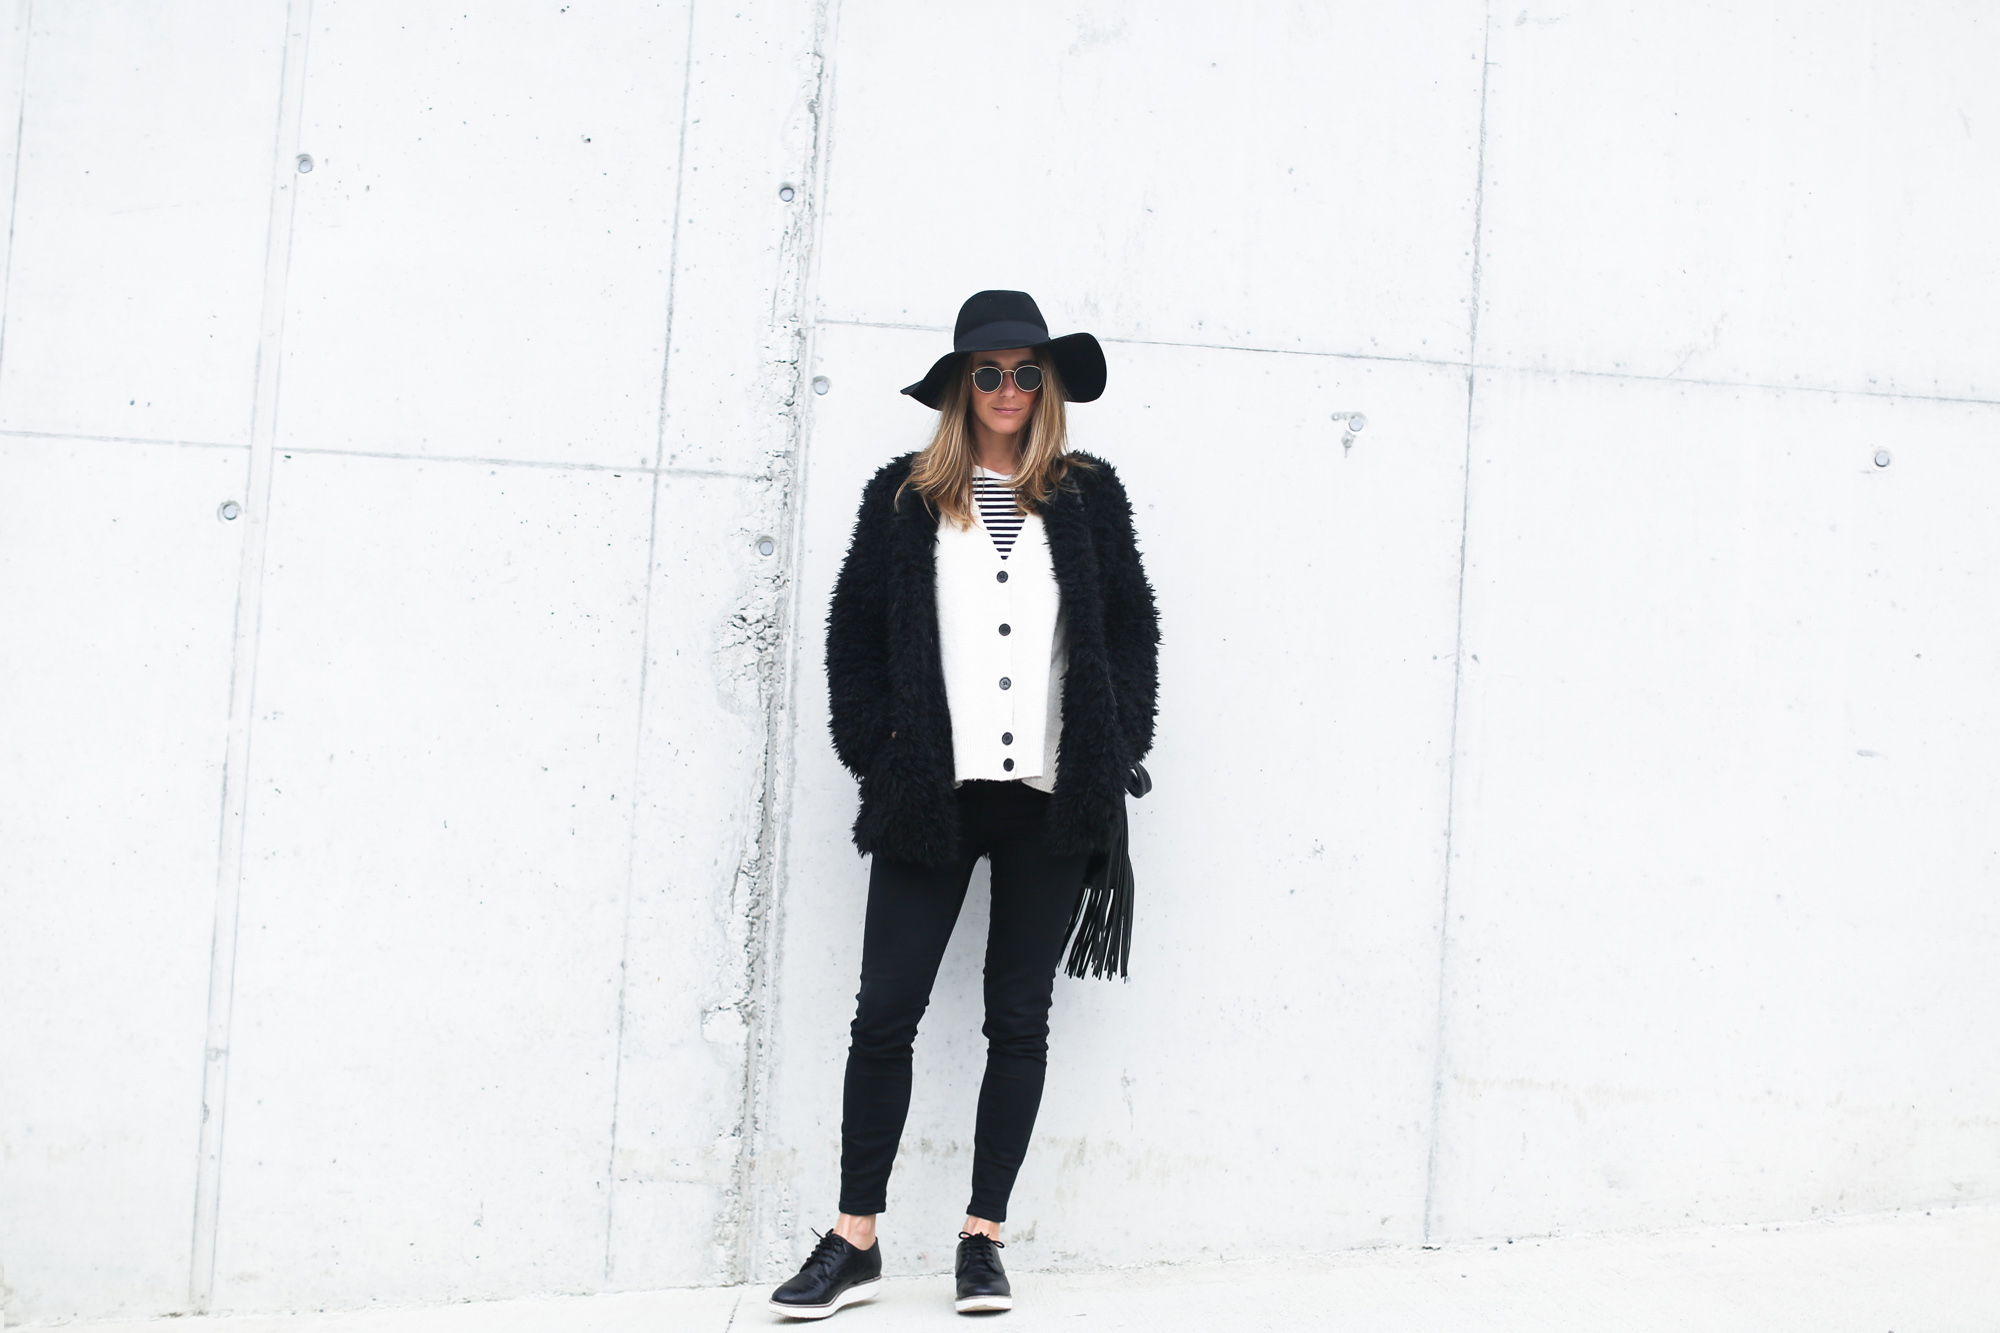 clochet_streetstyle_Billabong_Christmas_collection_furry_coat-7